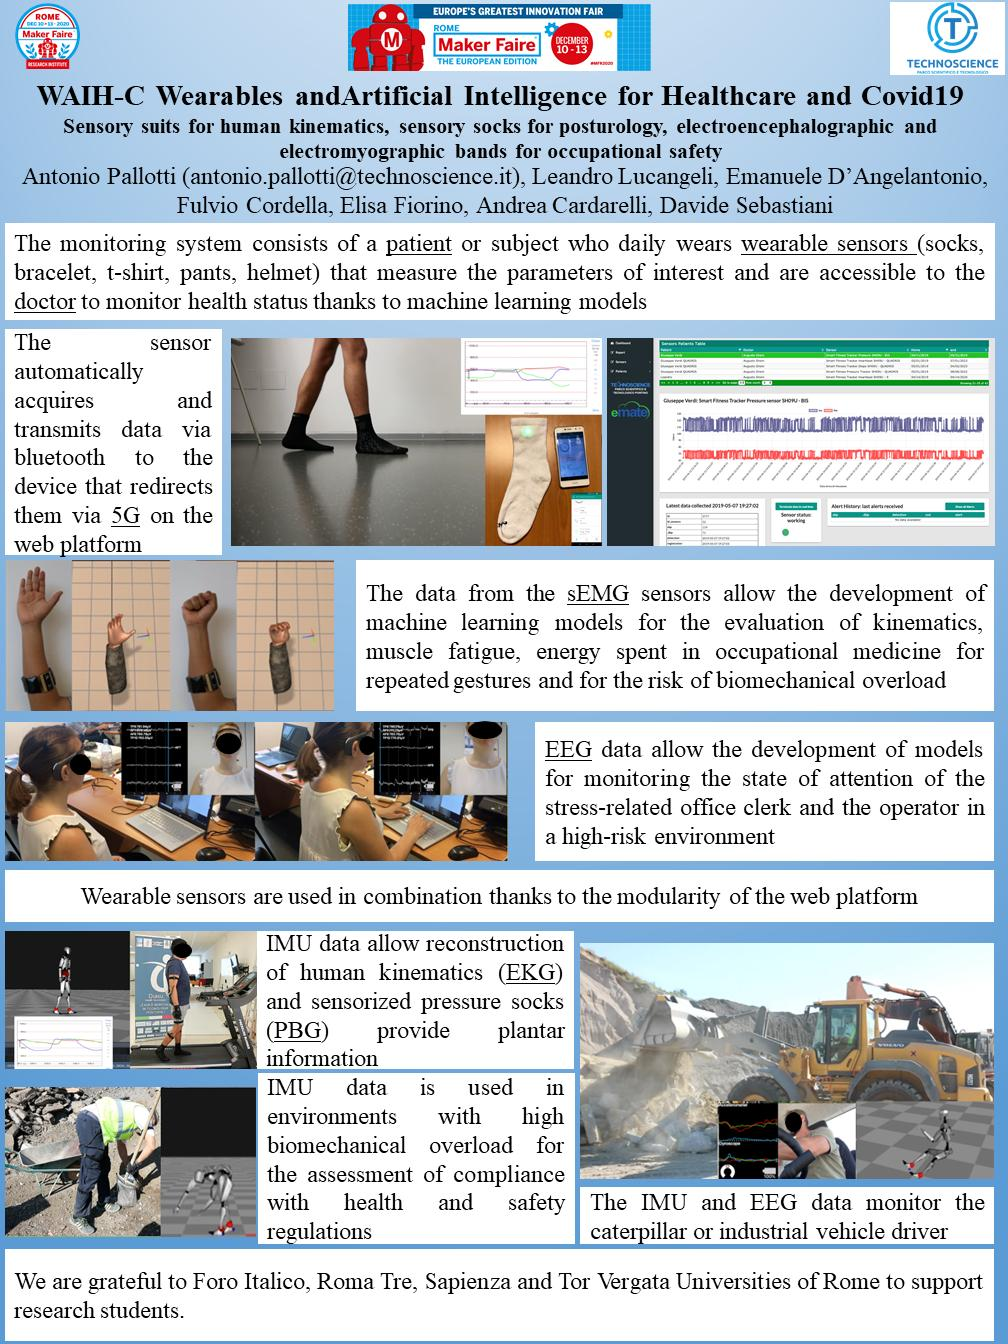 WAIH-C (Wearables and Artificial Intelligence for Healthcare and Covid-19)